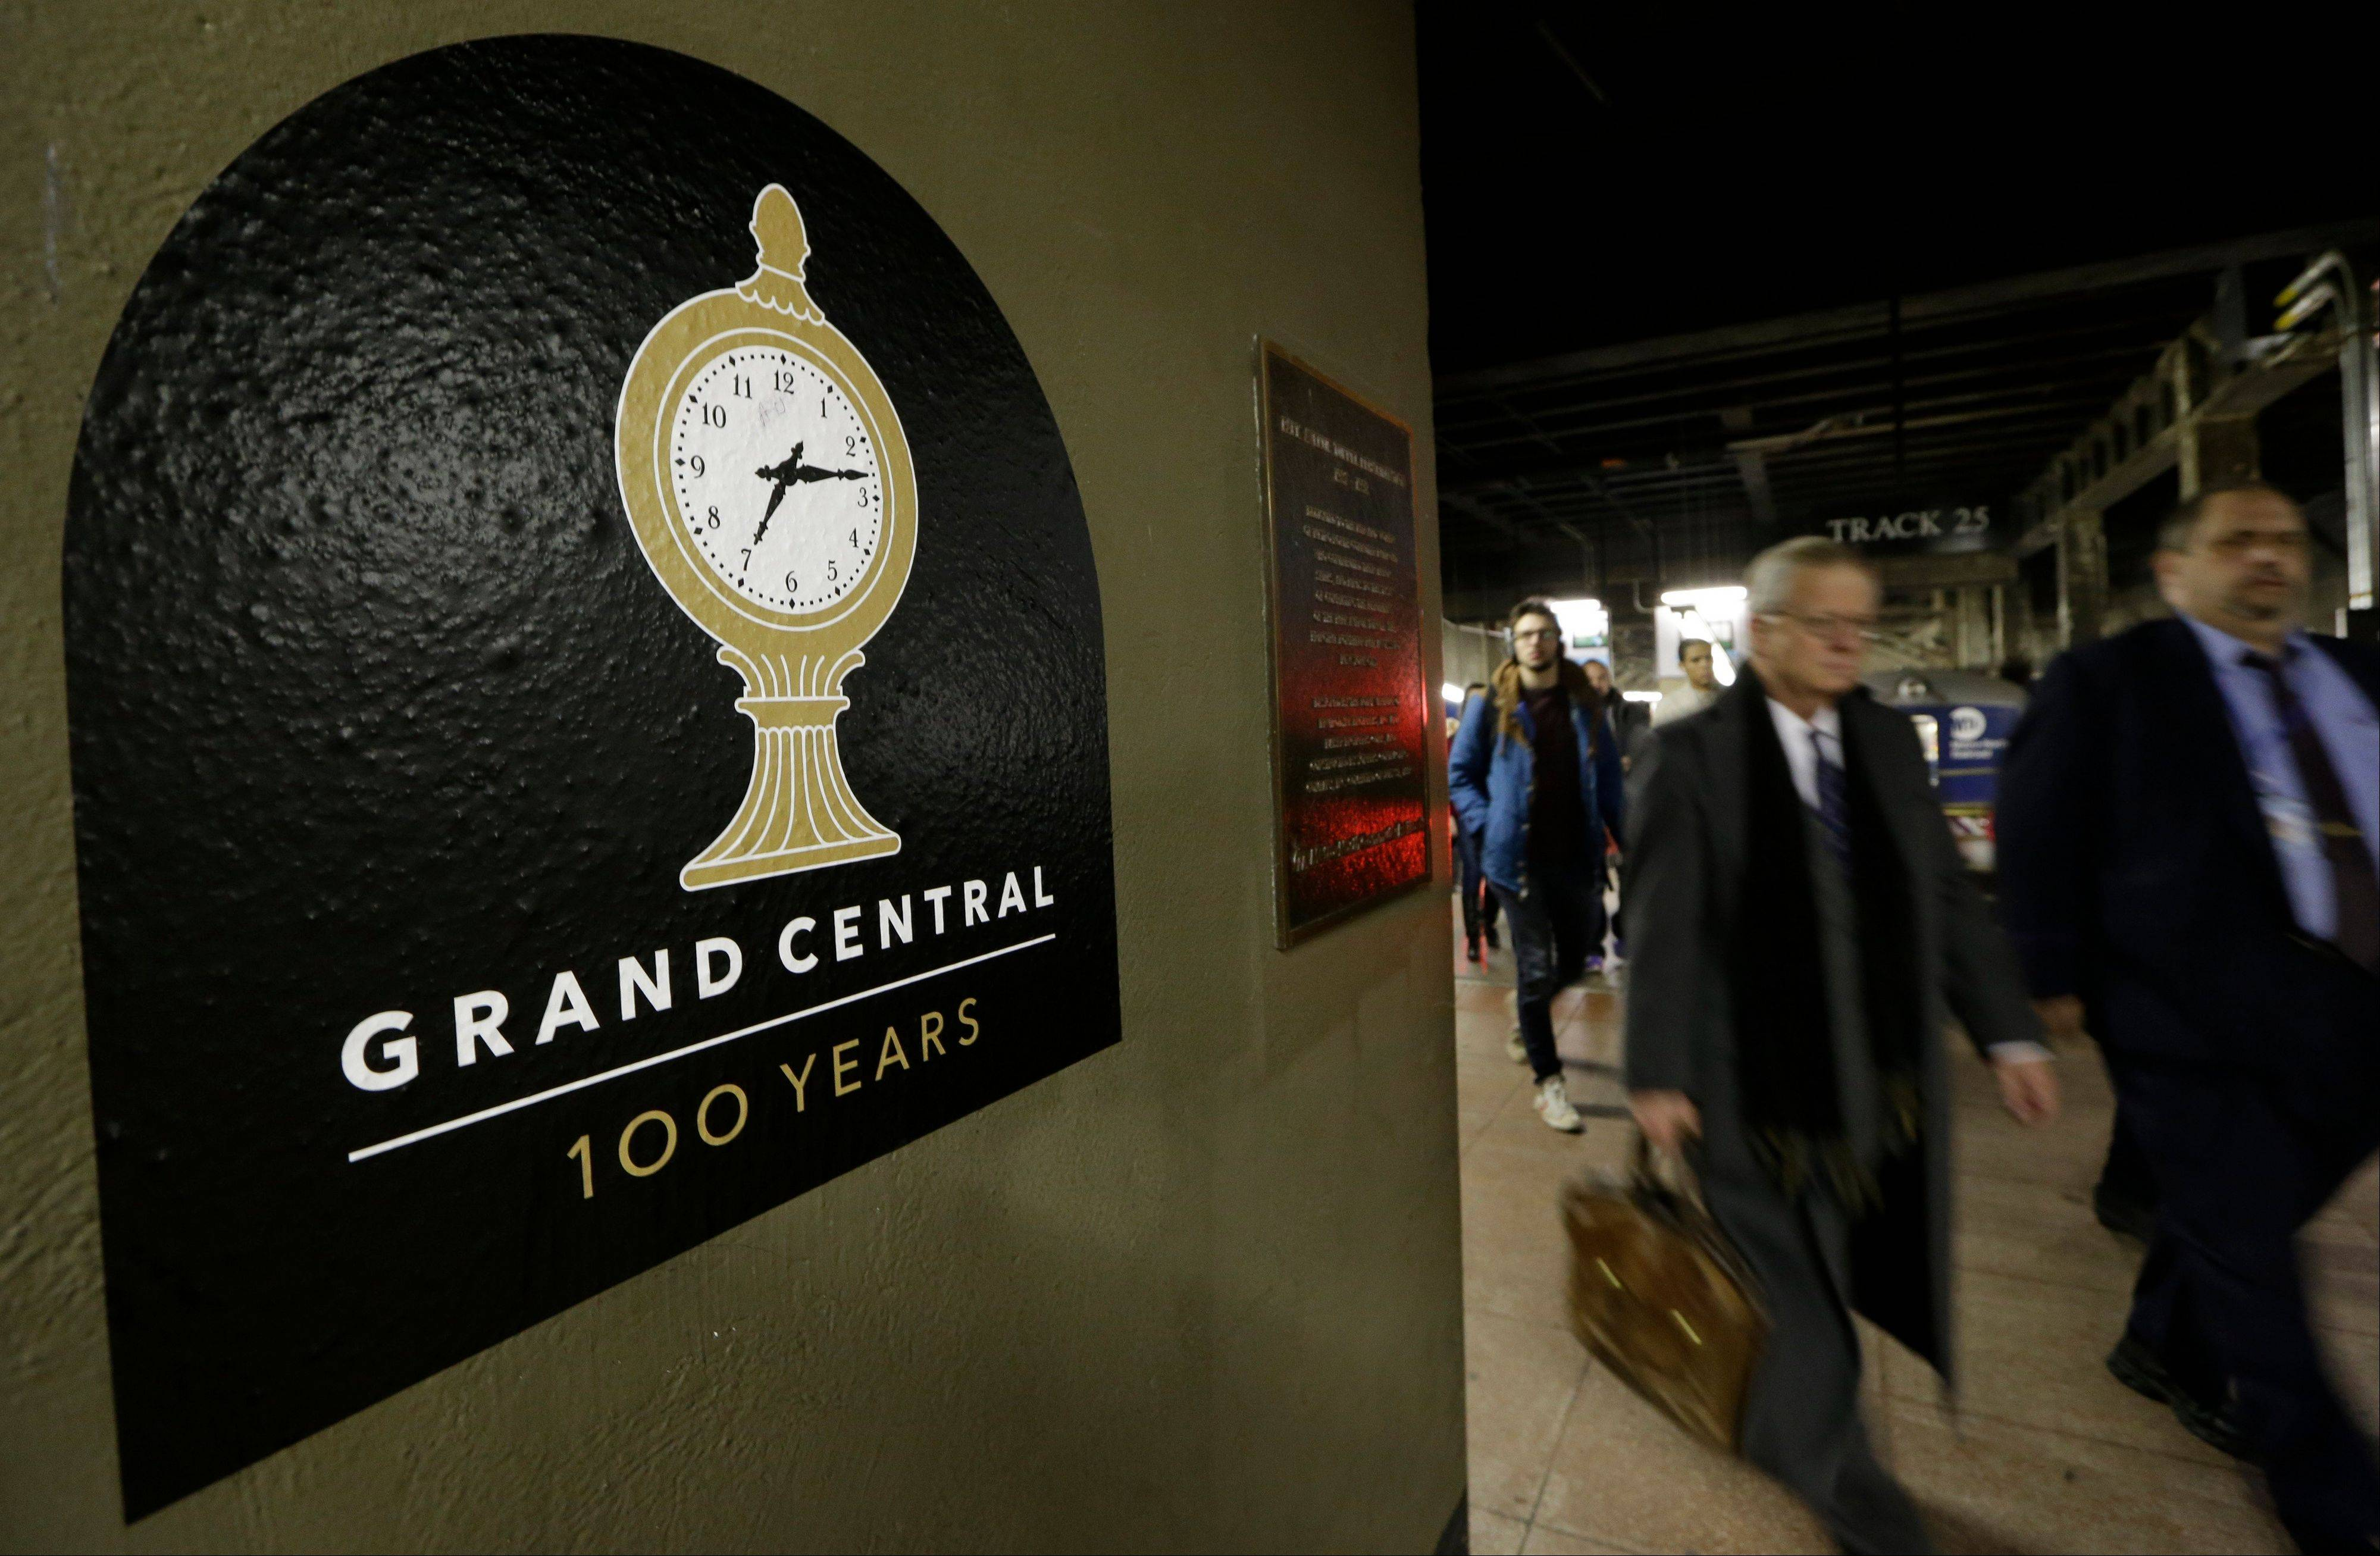 Passengers disembark from a train past a sign advertising the 100th anniversary of Grand Central Terminal in New York. The country's most famous train station and one of the finest examples of Beaux Arts architecture in America turns 100 on Feb. 1.